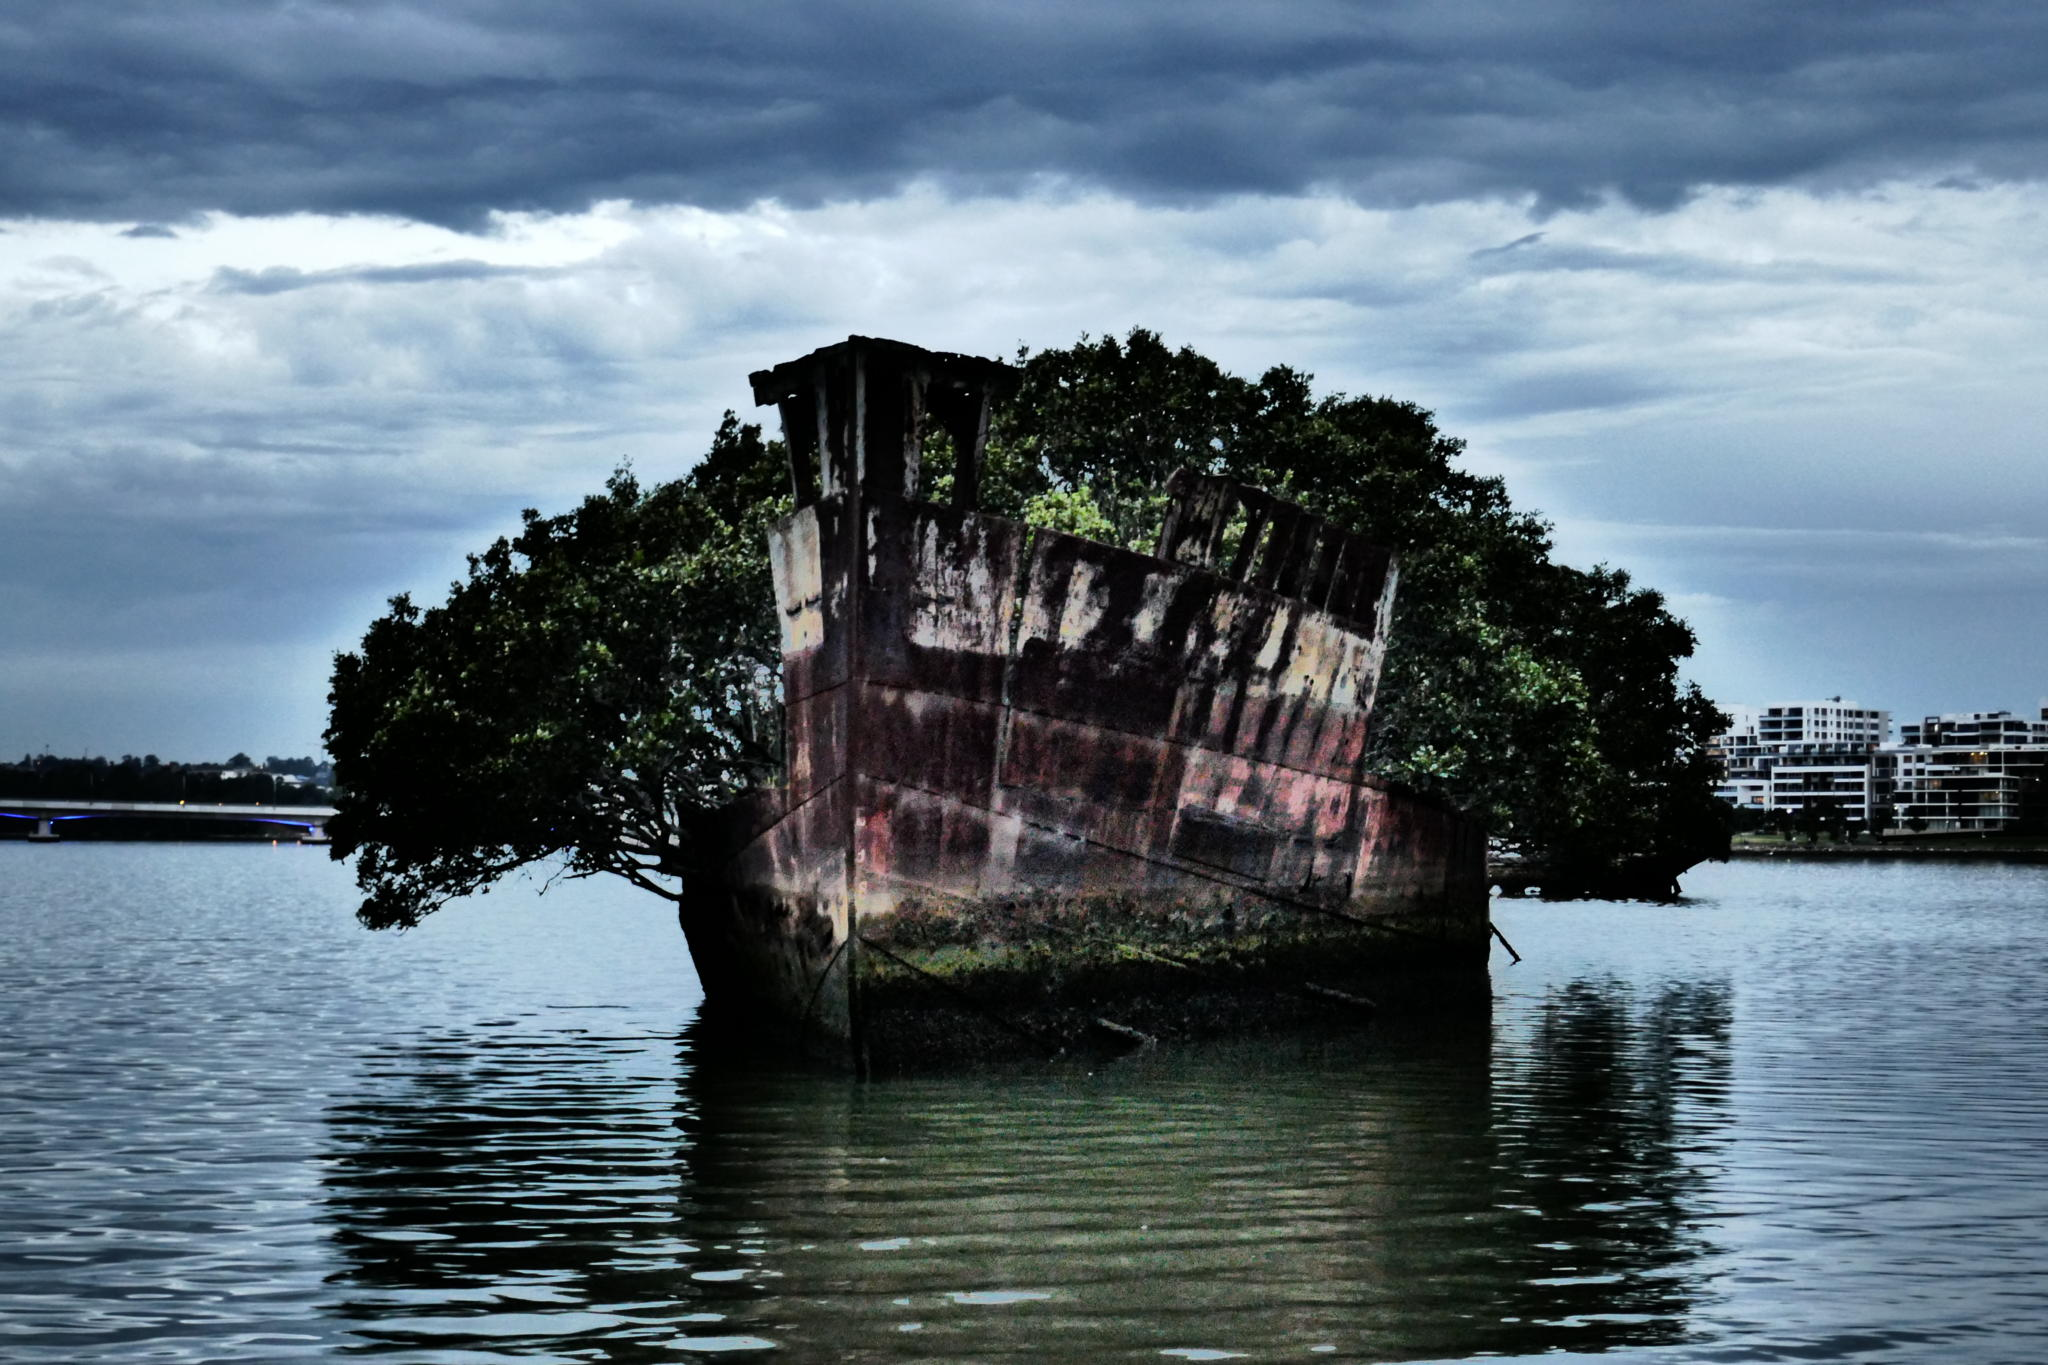 Alone with the SS Ayrfield Shipwreck, the Floating Forest of Sydney